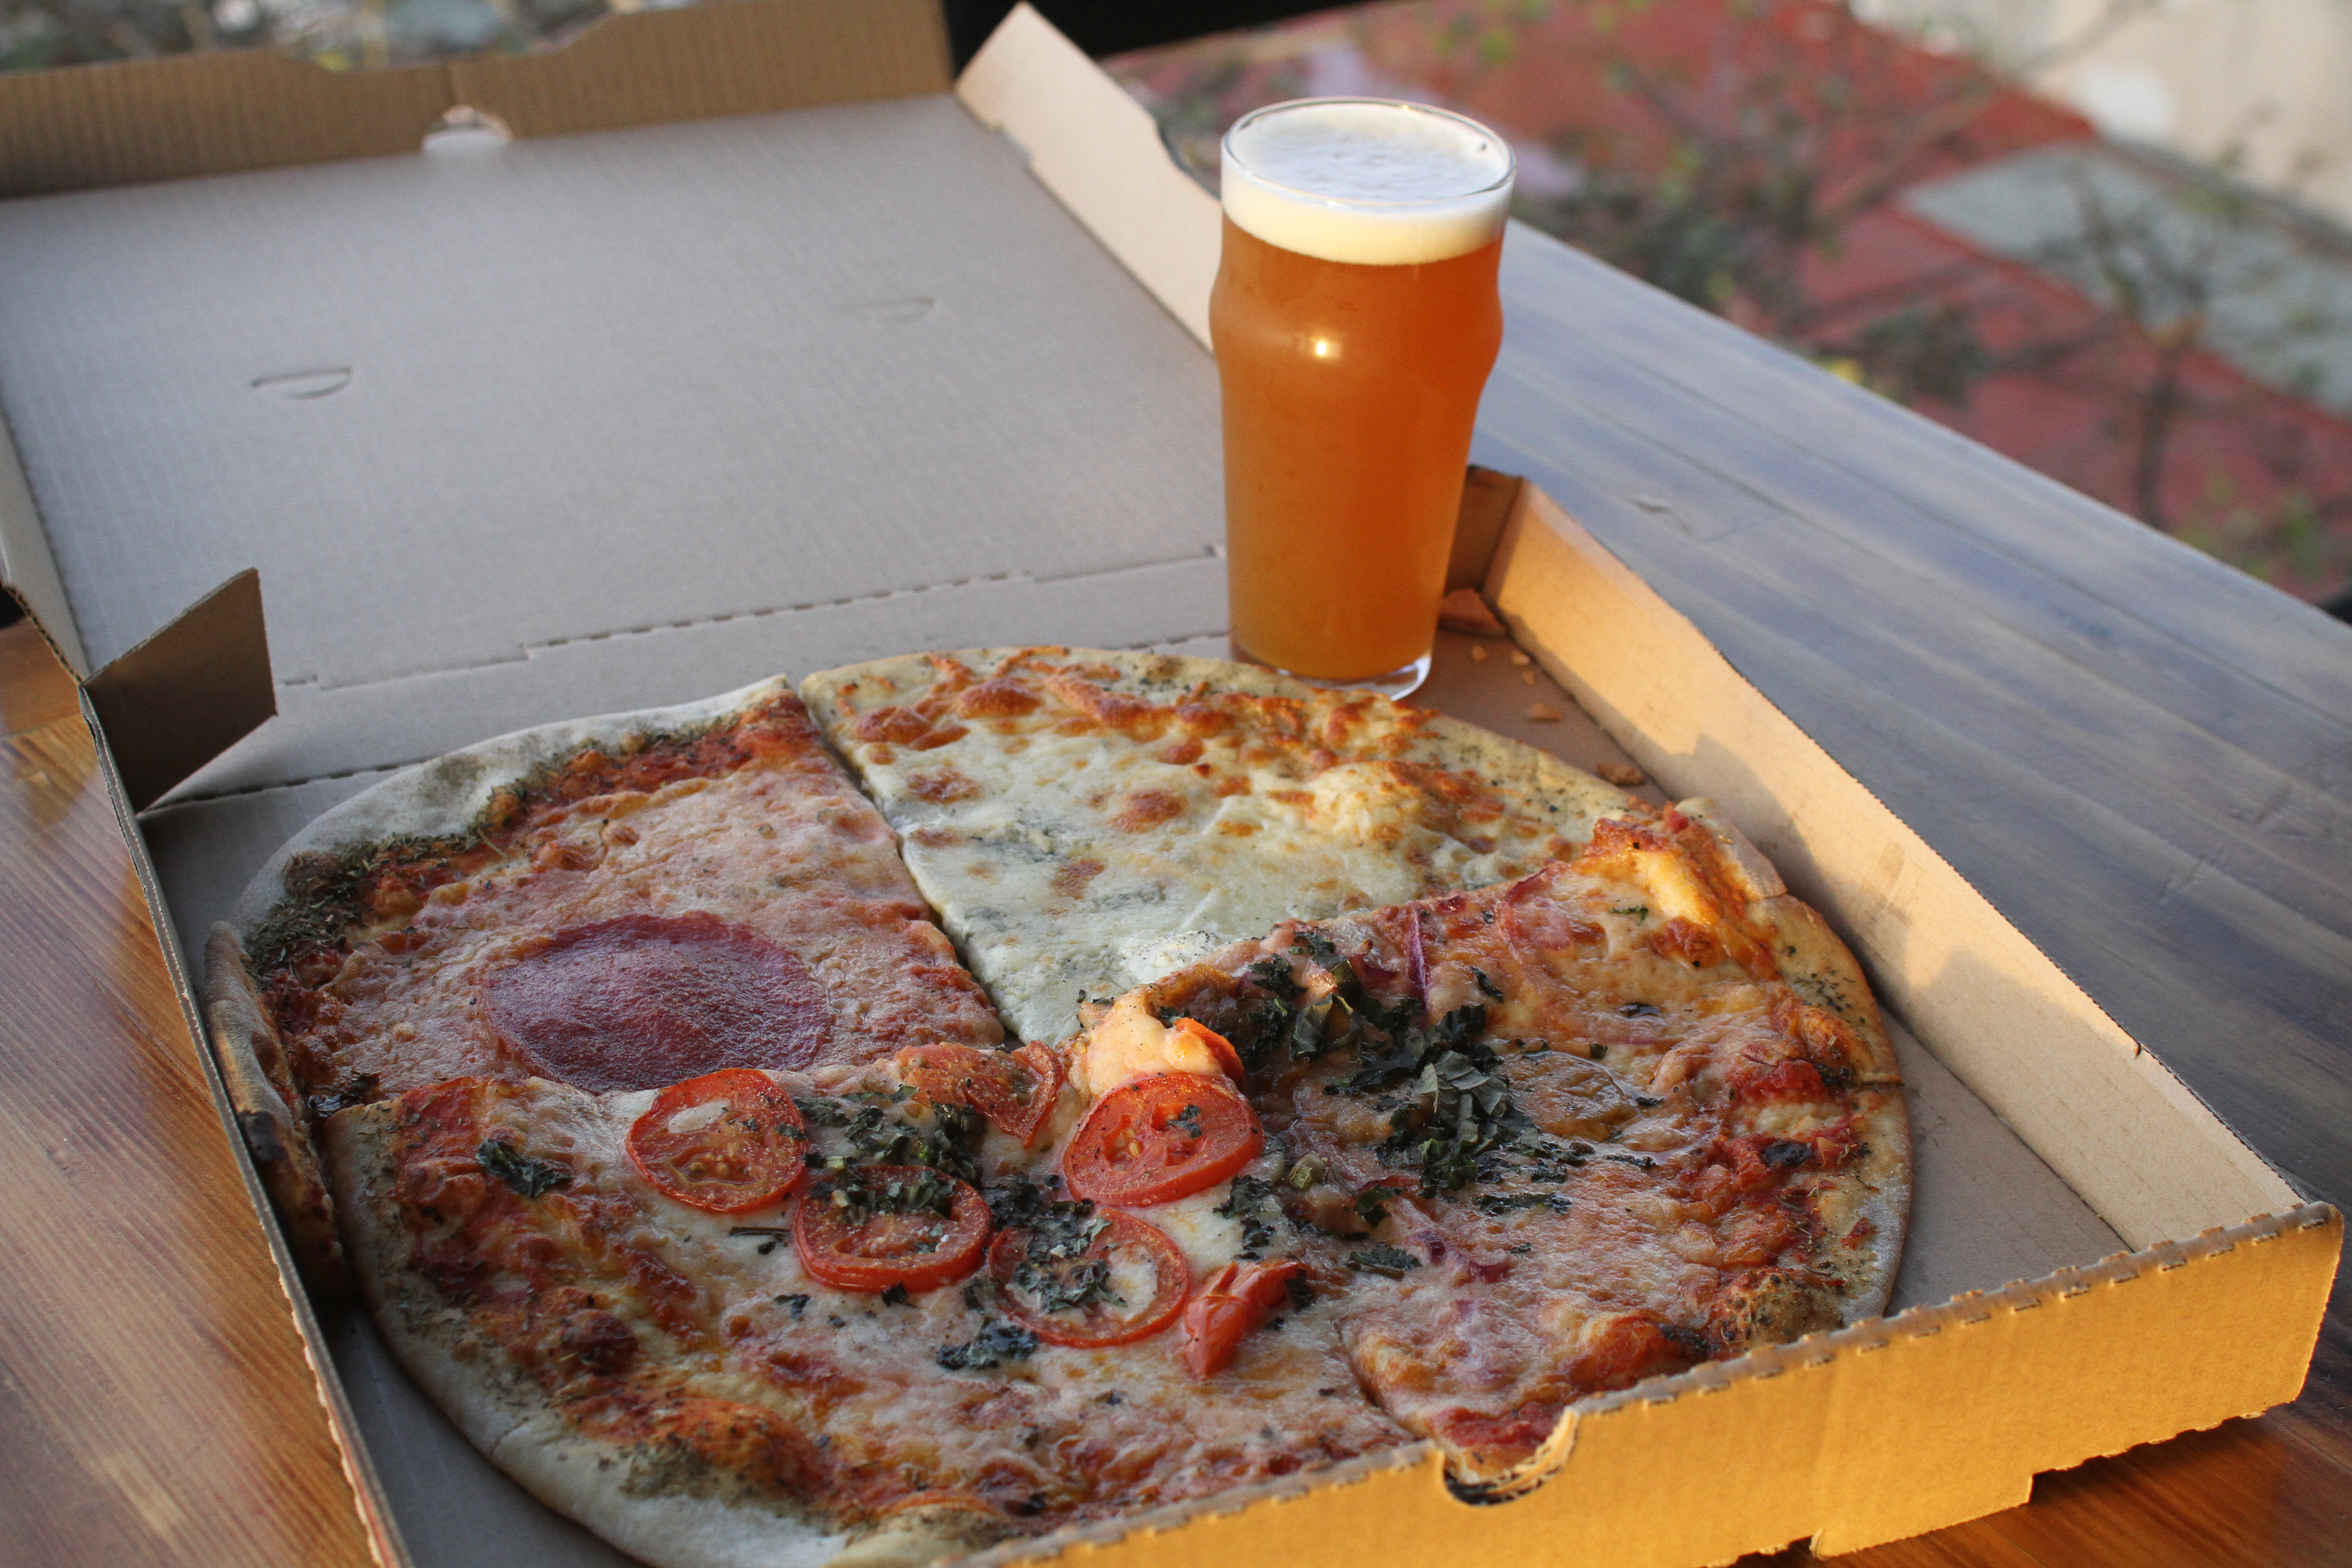 All four slices with a pint of Penthouse IPA at Norte Brewing Co.